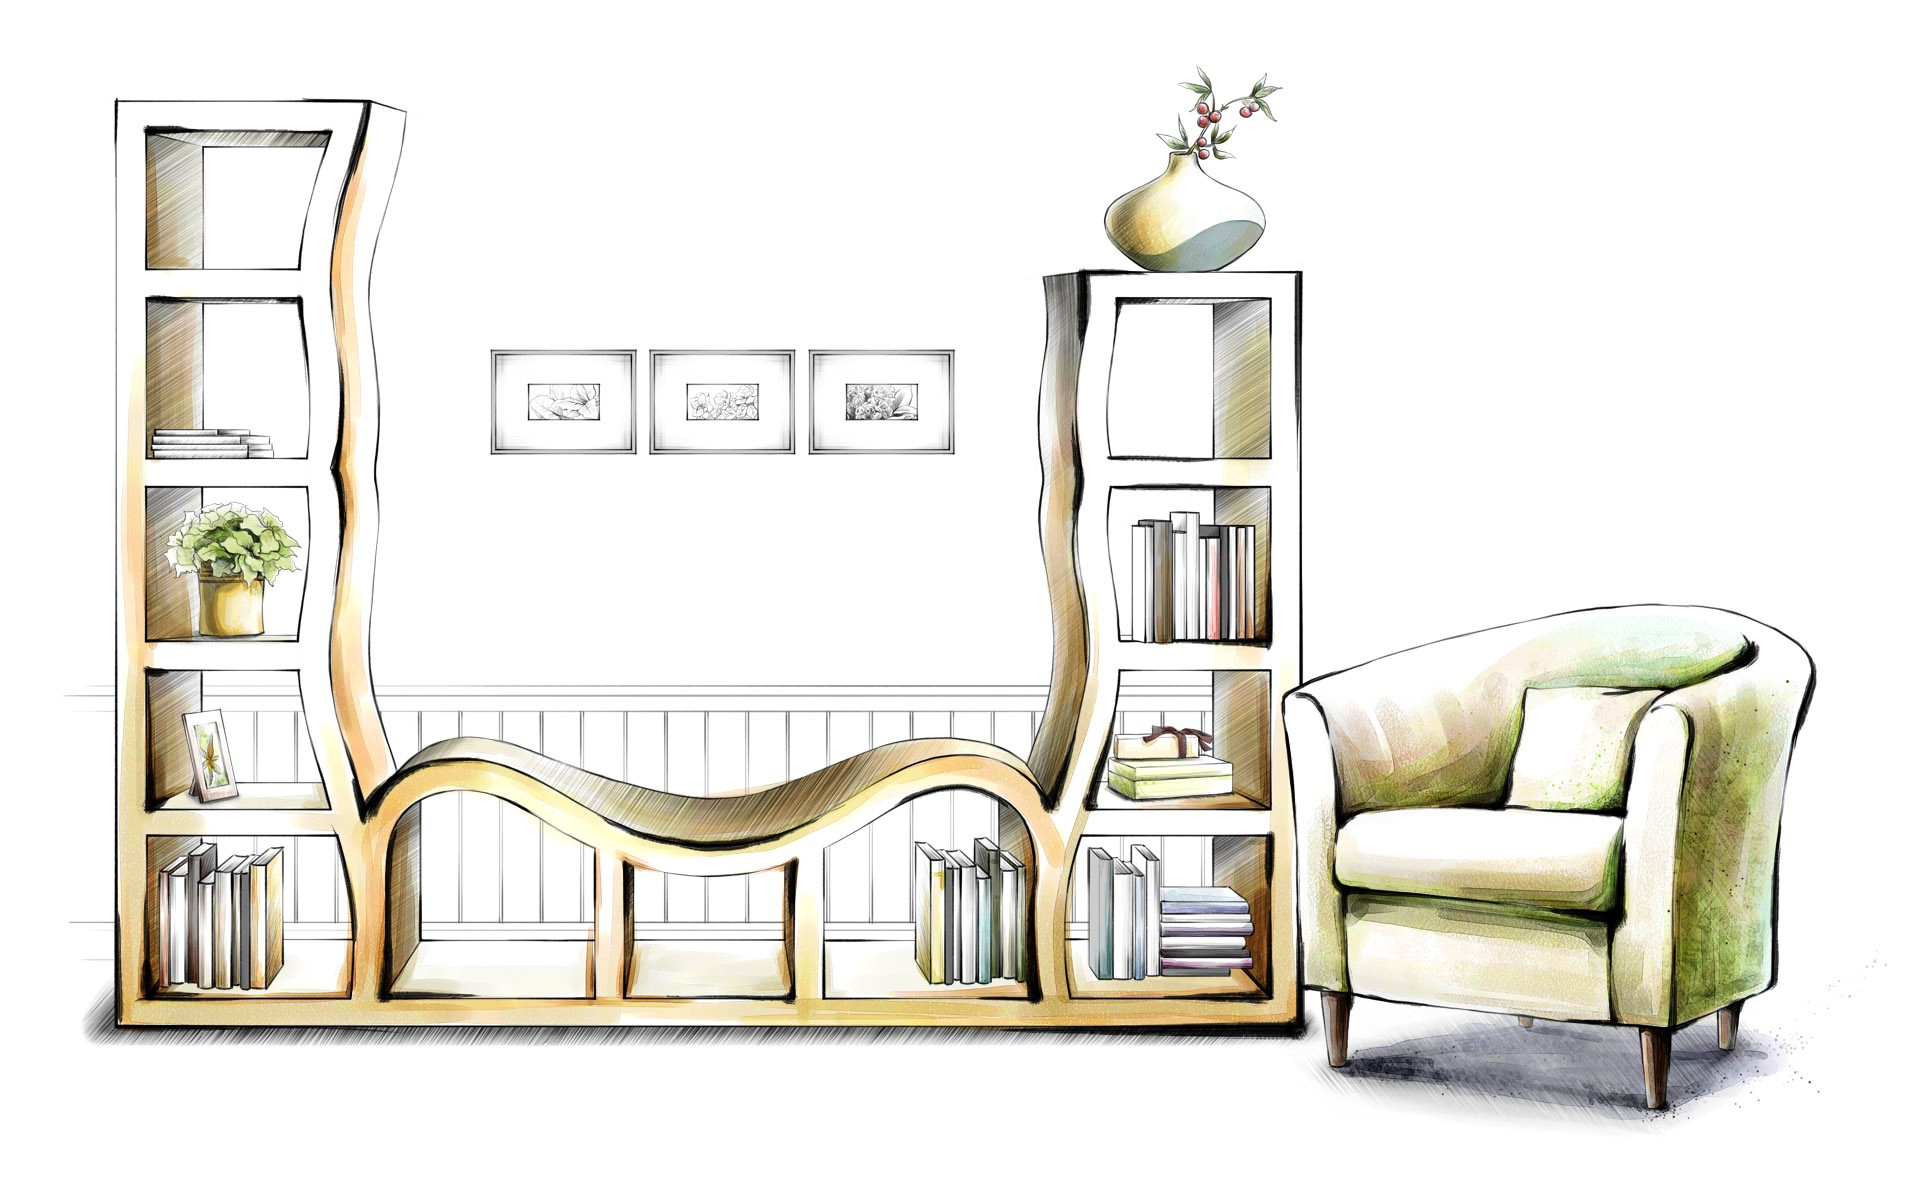 interior drawings design PPT Backgrounds